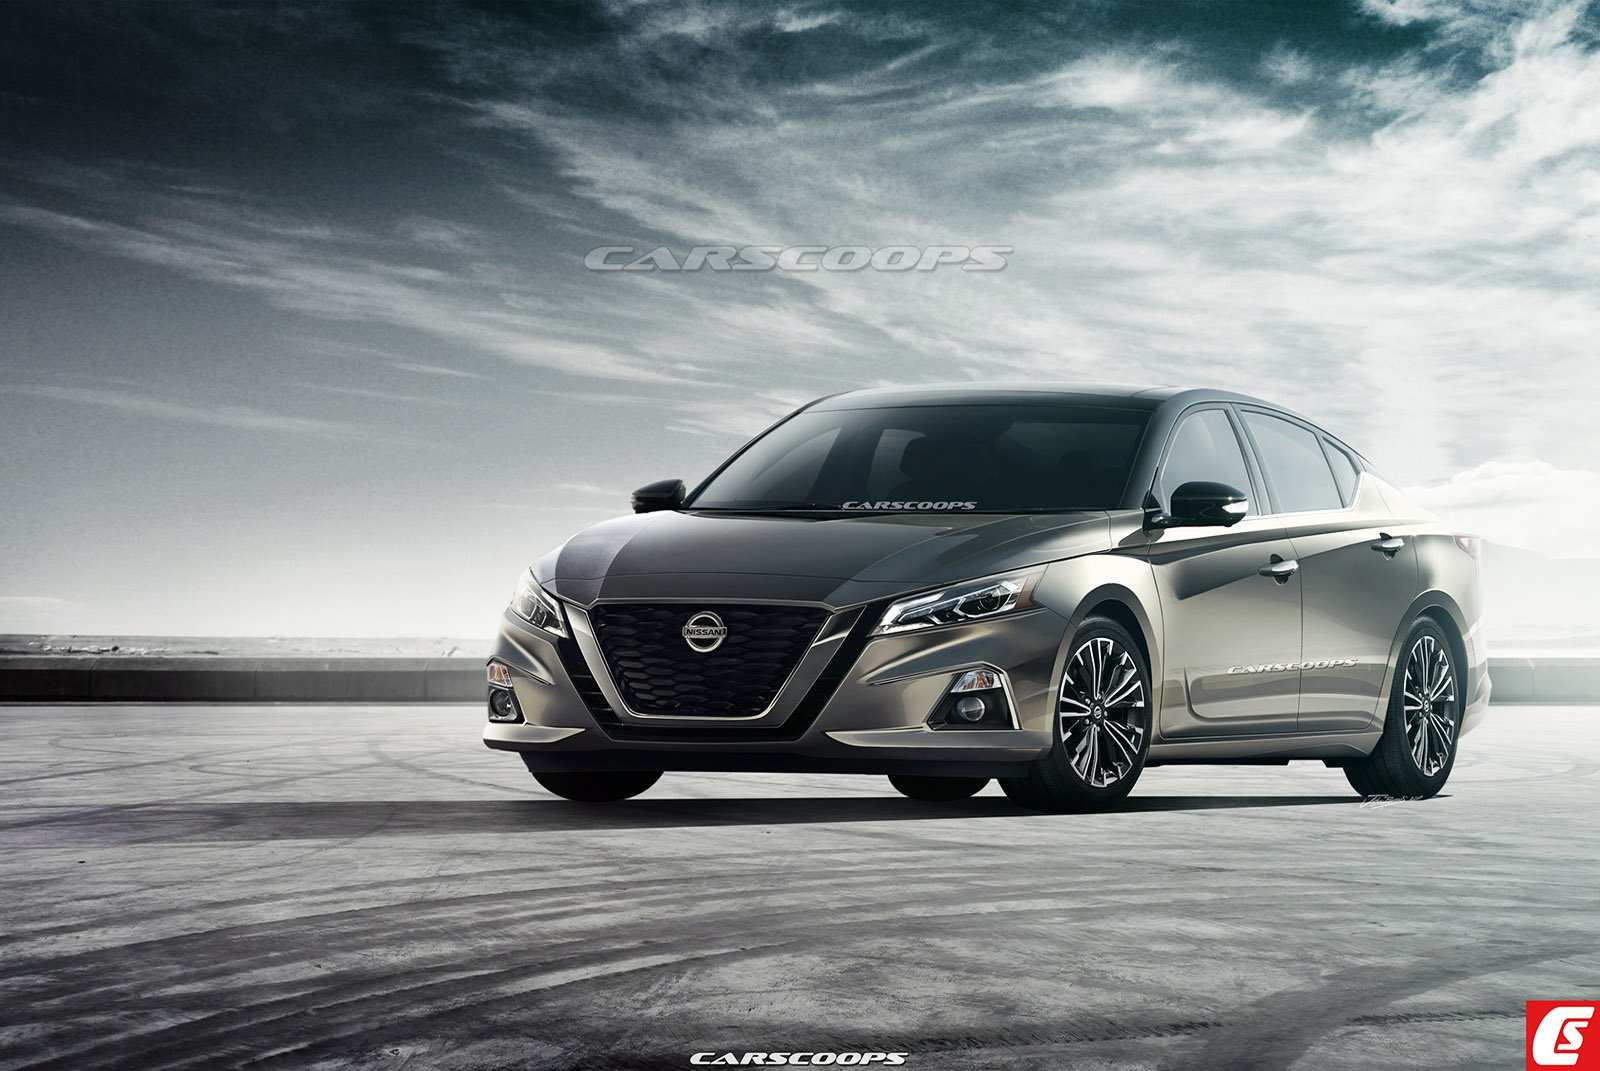 24 All New 2019 Nissan Altima Rendering Photos with 2019 Nissan Altima Rendering